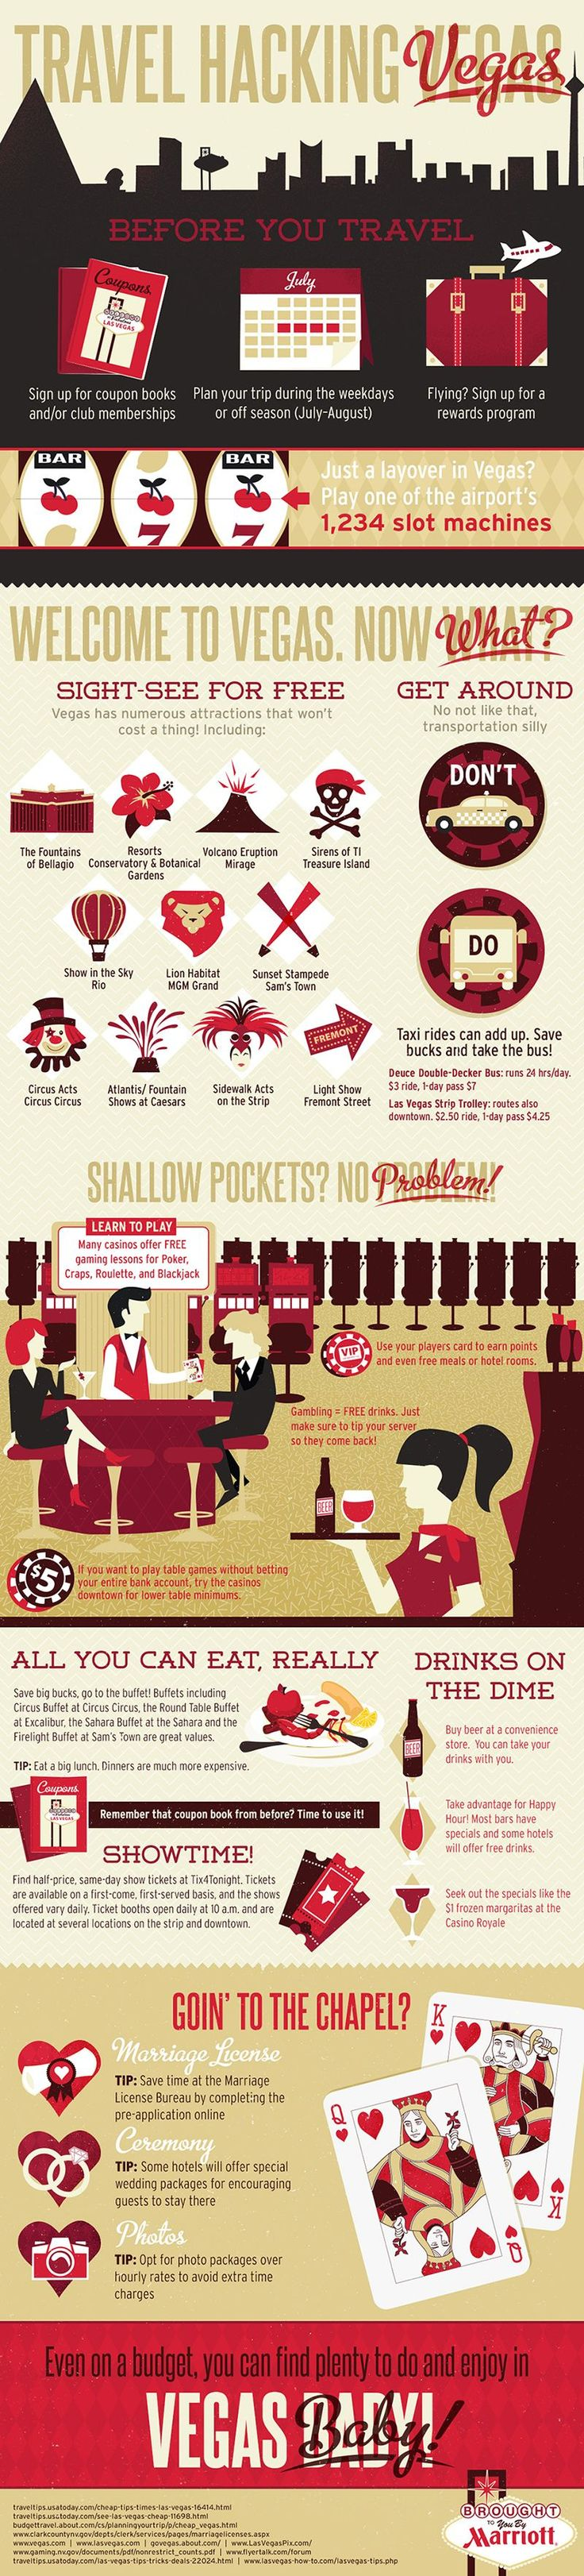 Visiting Las Vegas On A Budget - Infographic